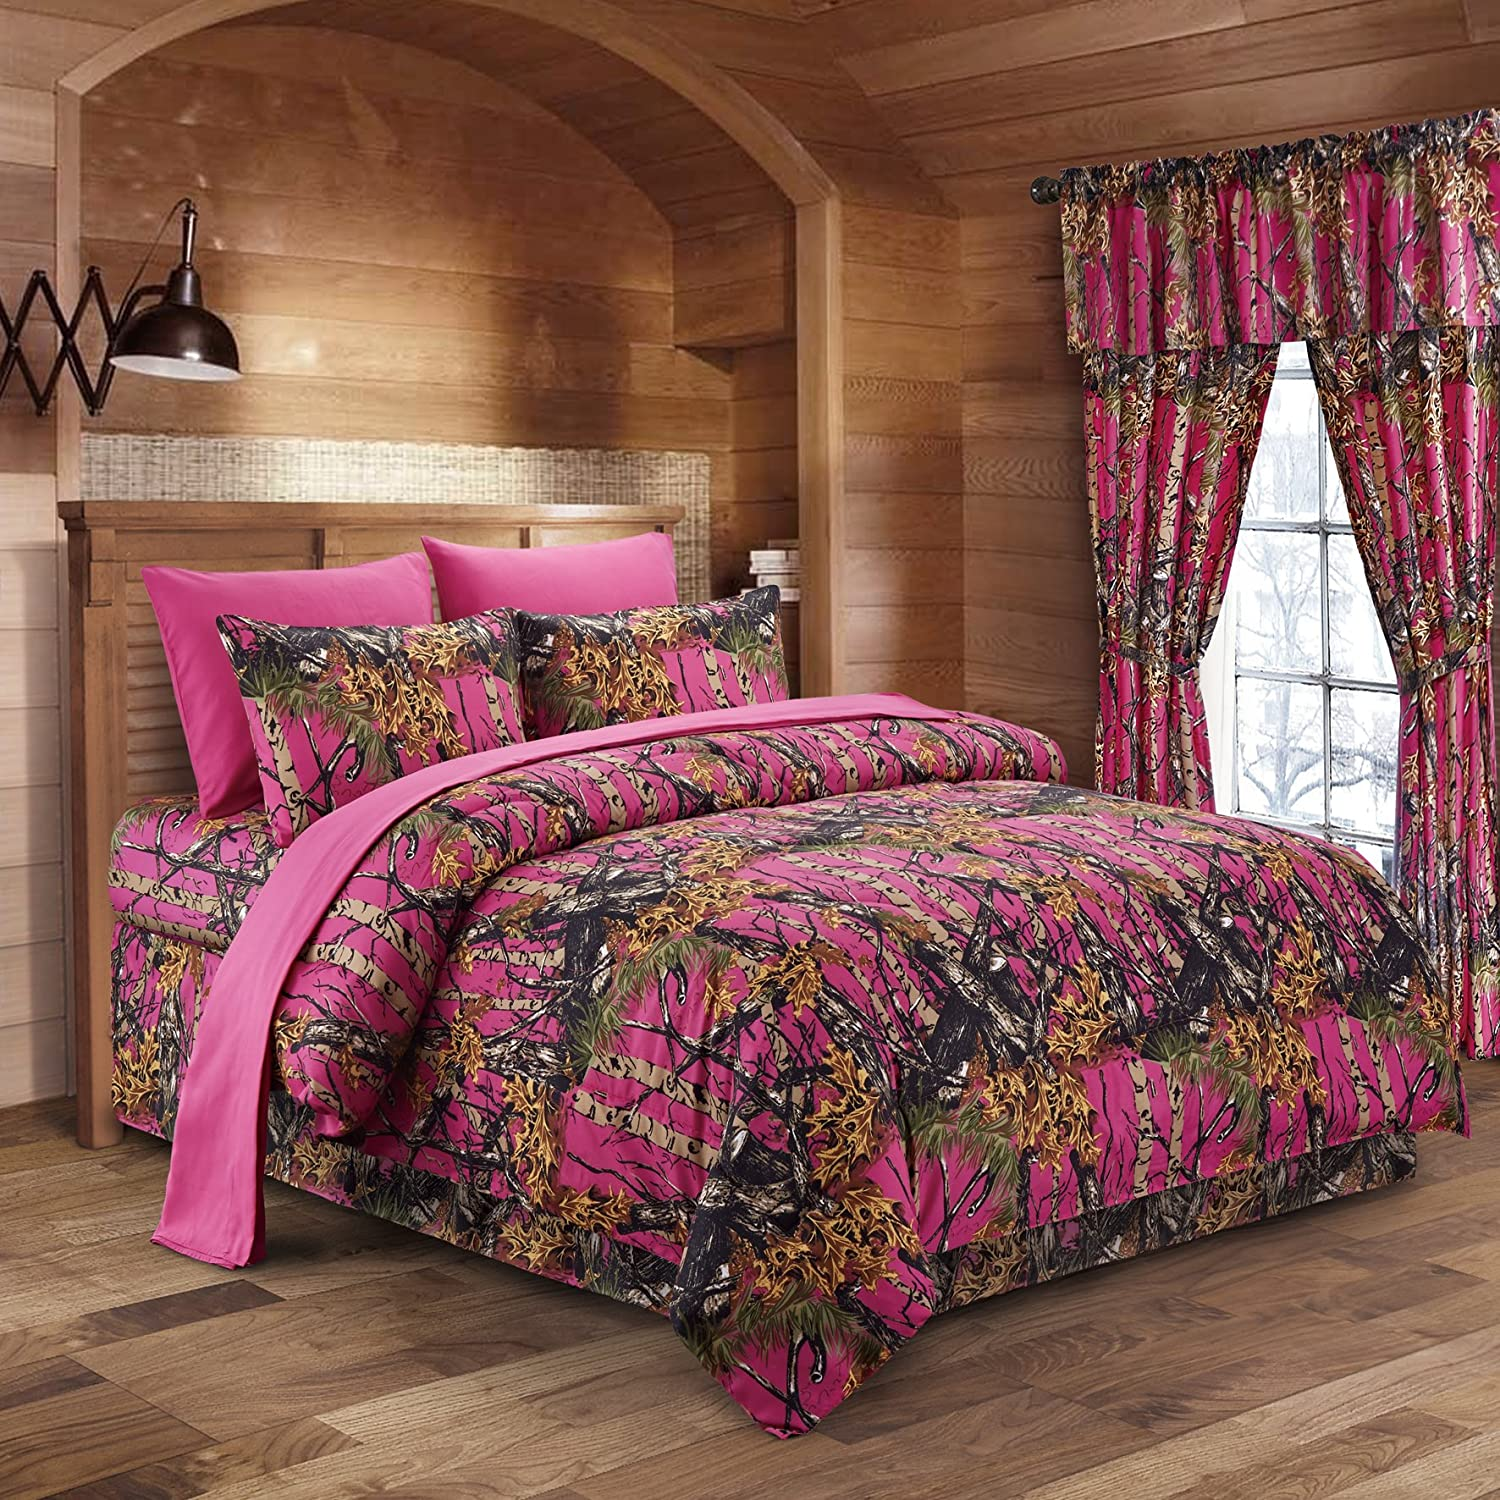 Regal Comfort The Woods Hot Pink Camouflage Twin 5pc Premium Luxury Comforter, Sheet, Pillowcases, and Bed Skirt Set Camo Bedding Set for Hunters Cabin or Rustic Lodge Teens Boys and Girls